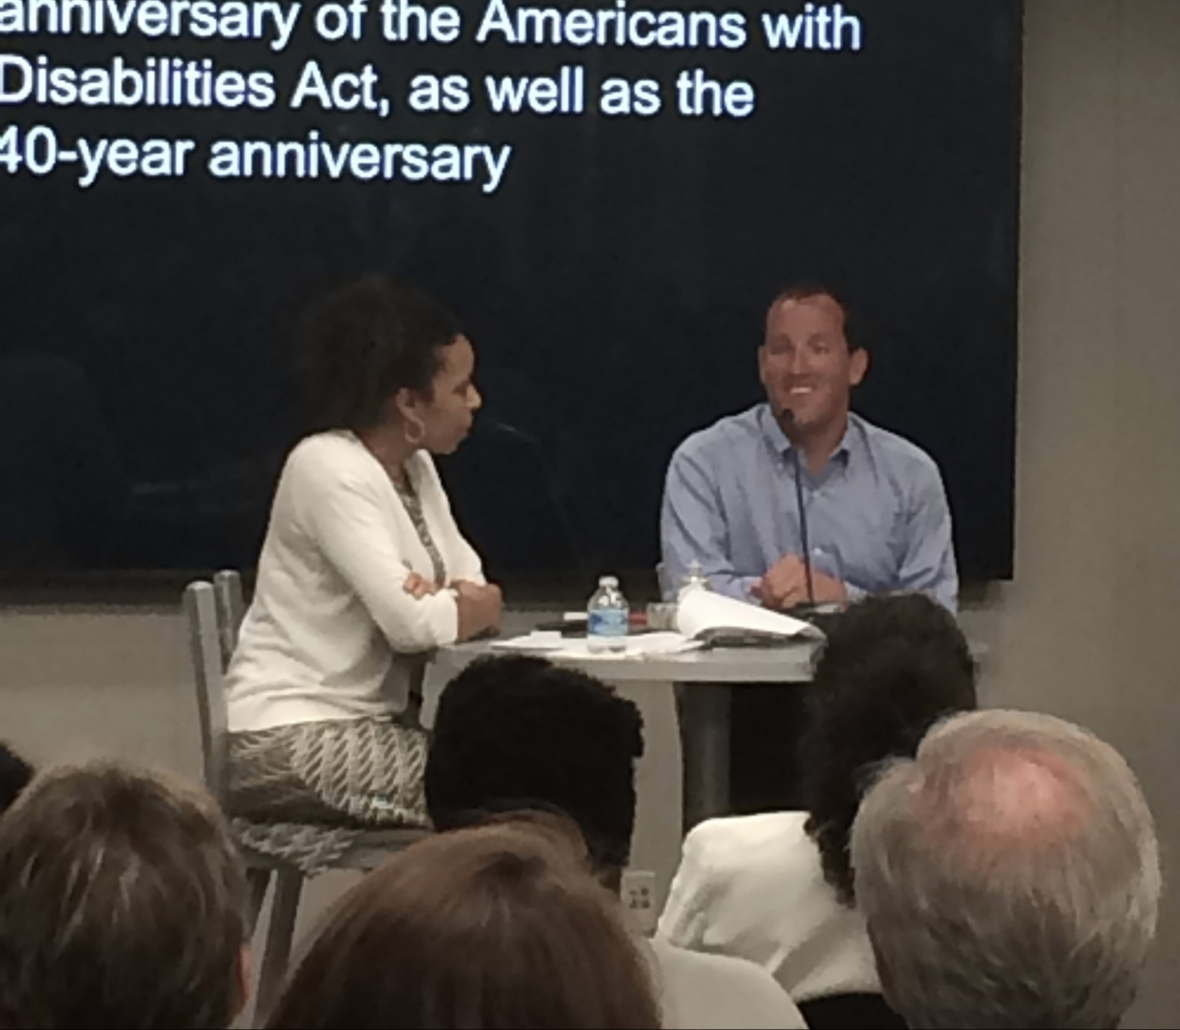 Cynthia and Richard Bernstein sitting at a high top table in front of an audience.